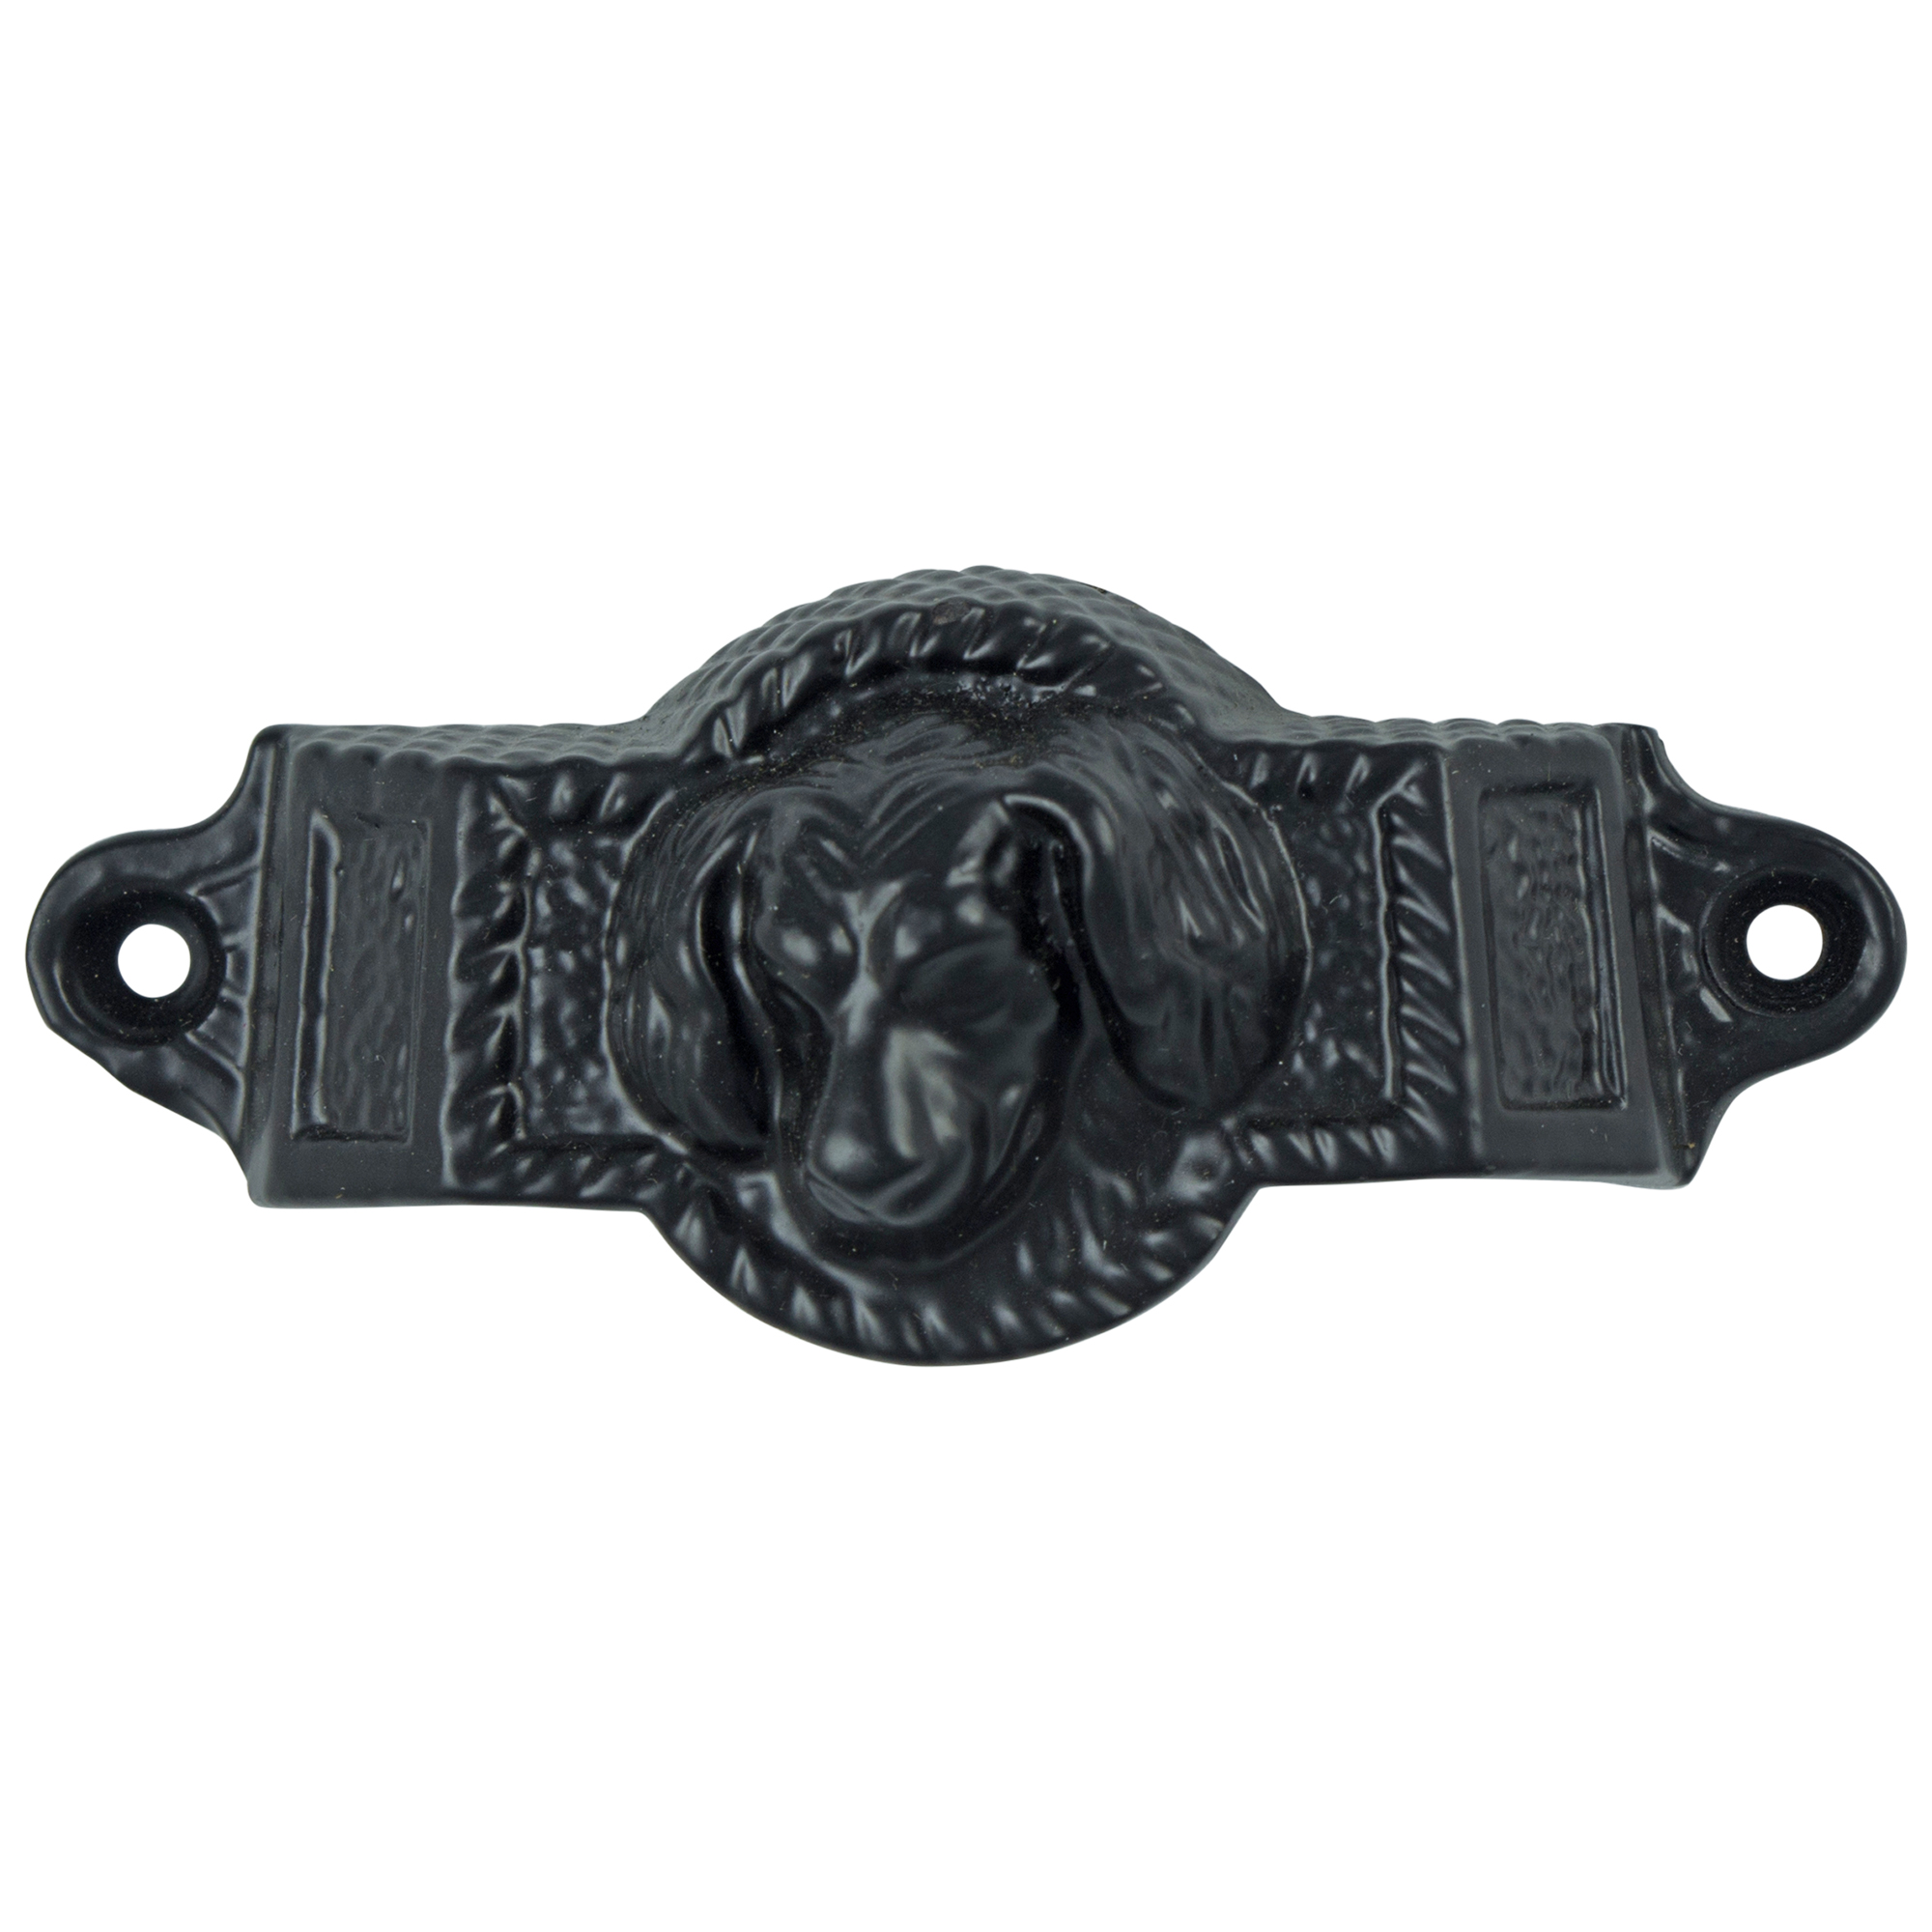 Cast Iron Dog Bin Pull, Antique Replica Vintage Cabinet Hardware